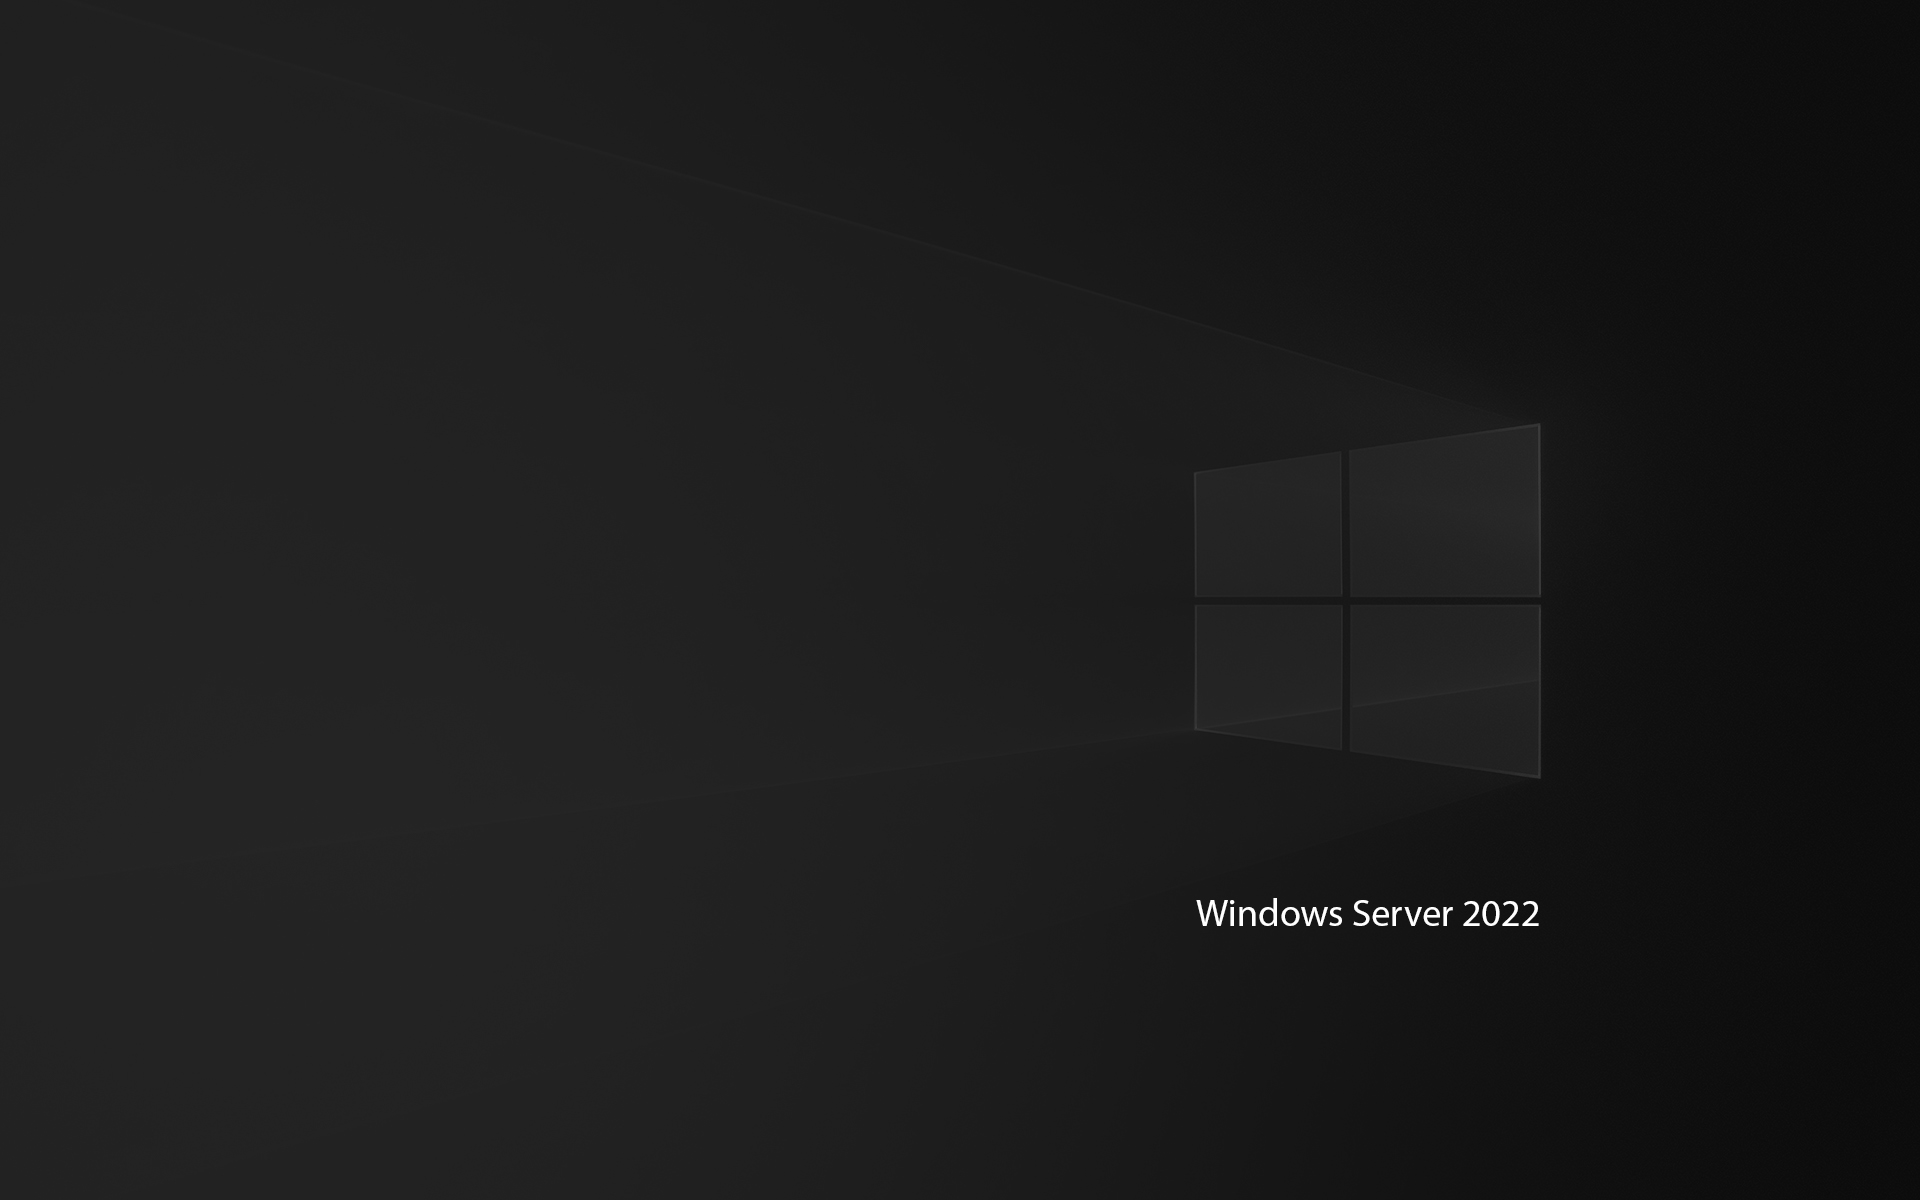 Windows Server 2022 Wallpaper Dark Mode Black